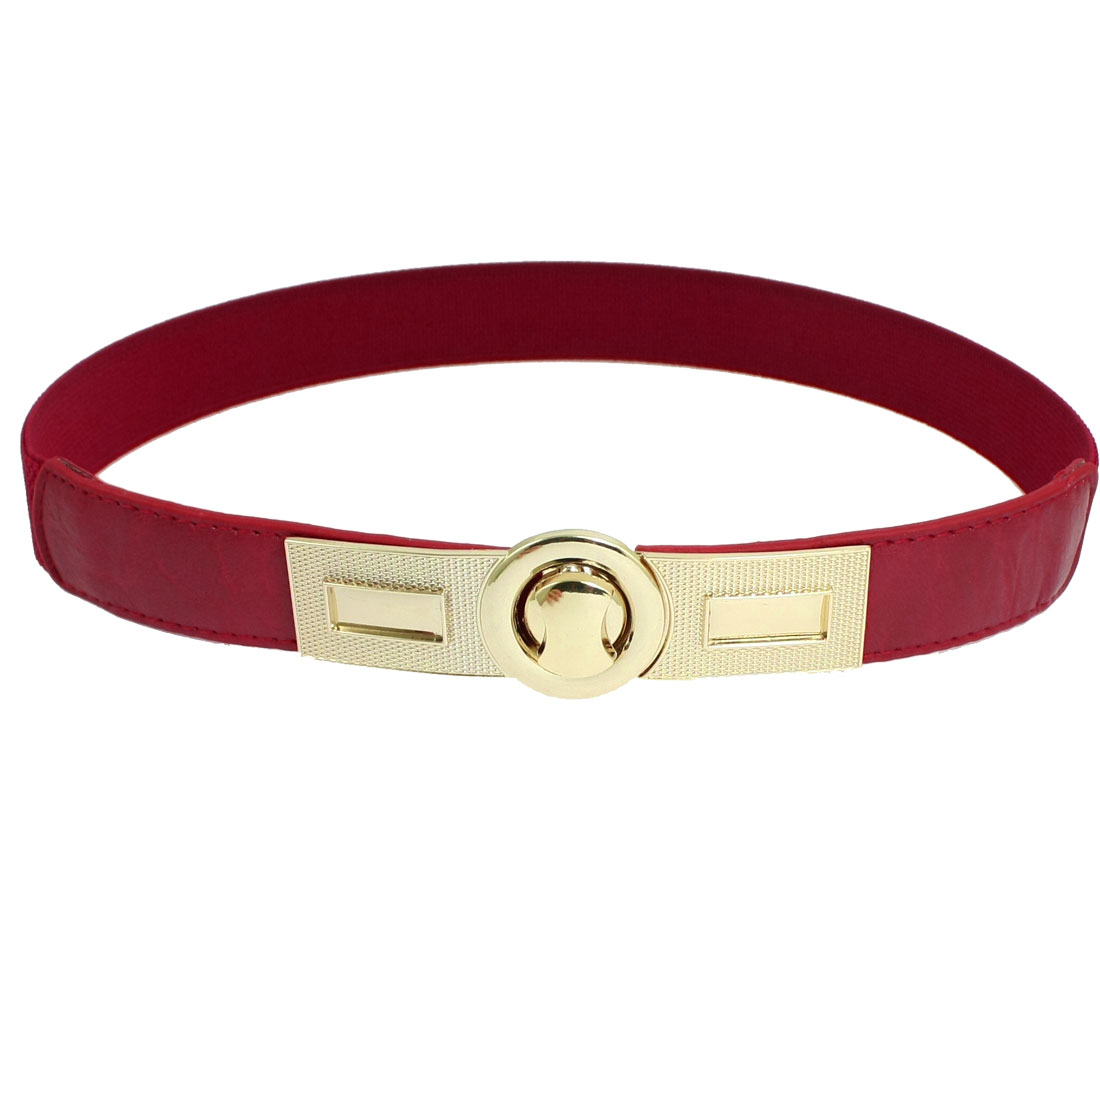 Lady Faux Leather Turn Lock Buckle Elastic Waist Belt Cinch Red